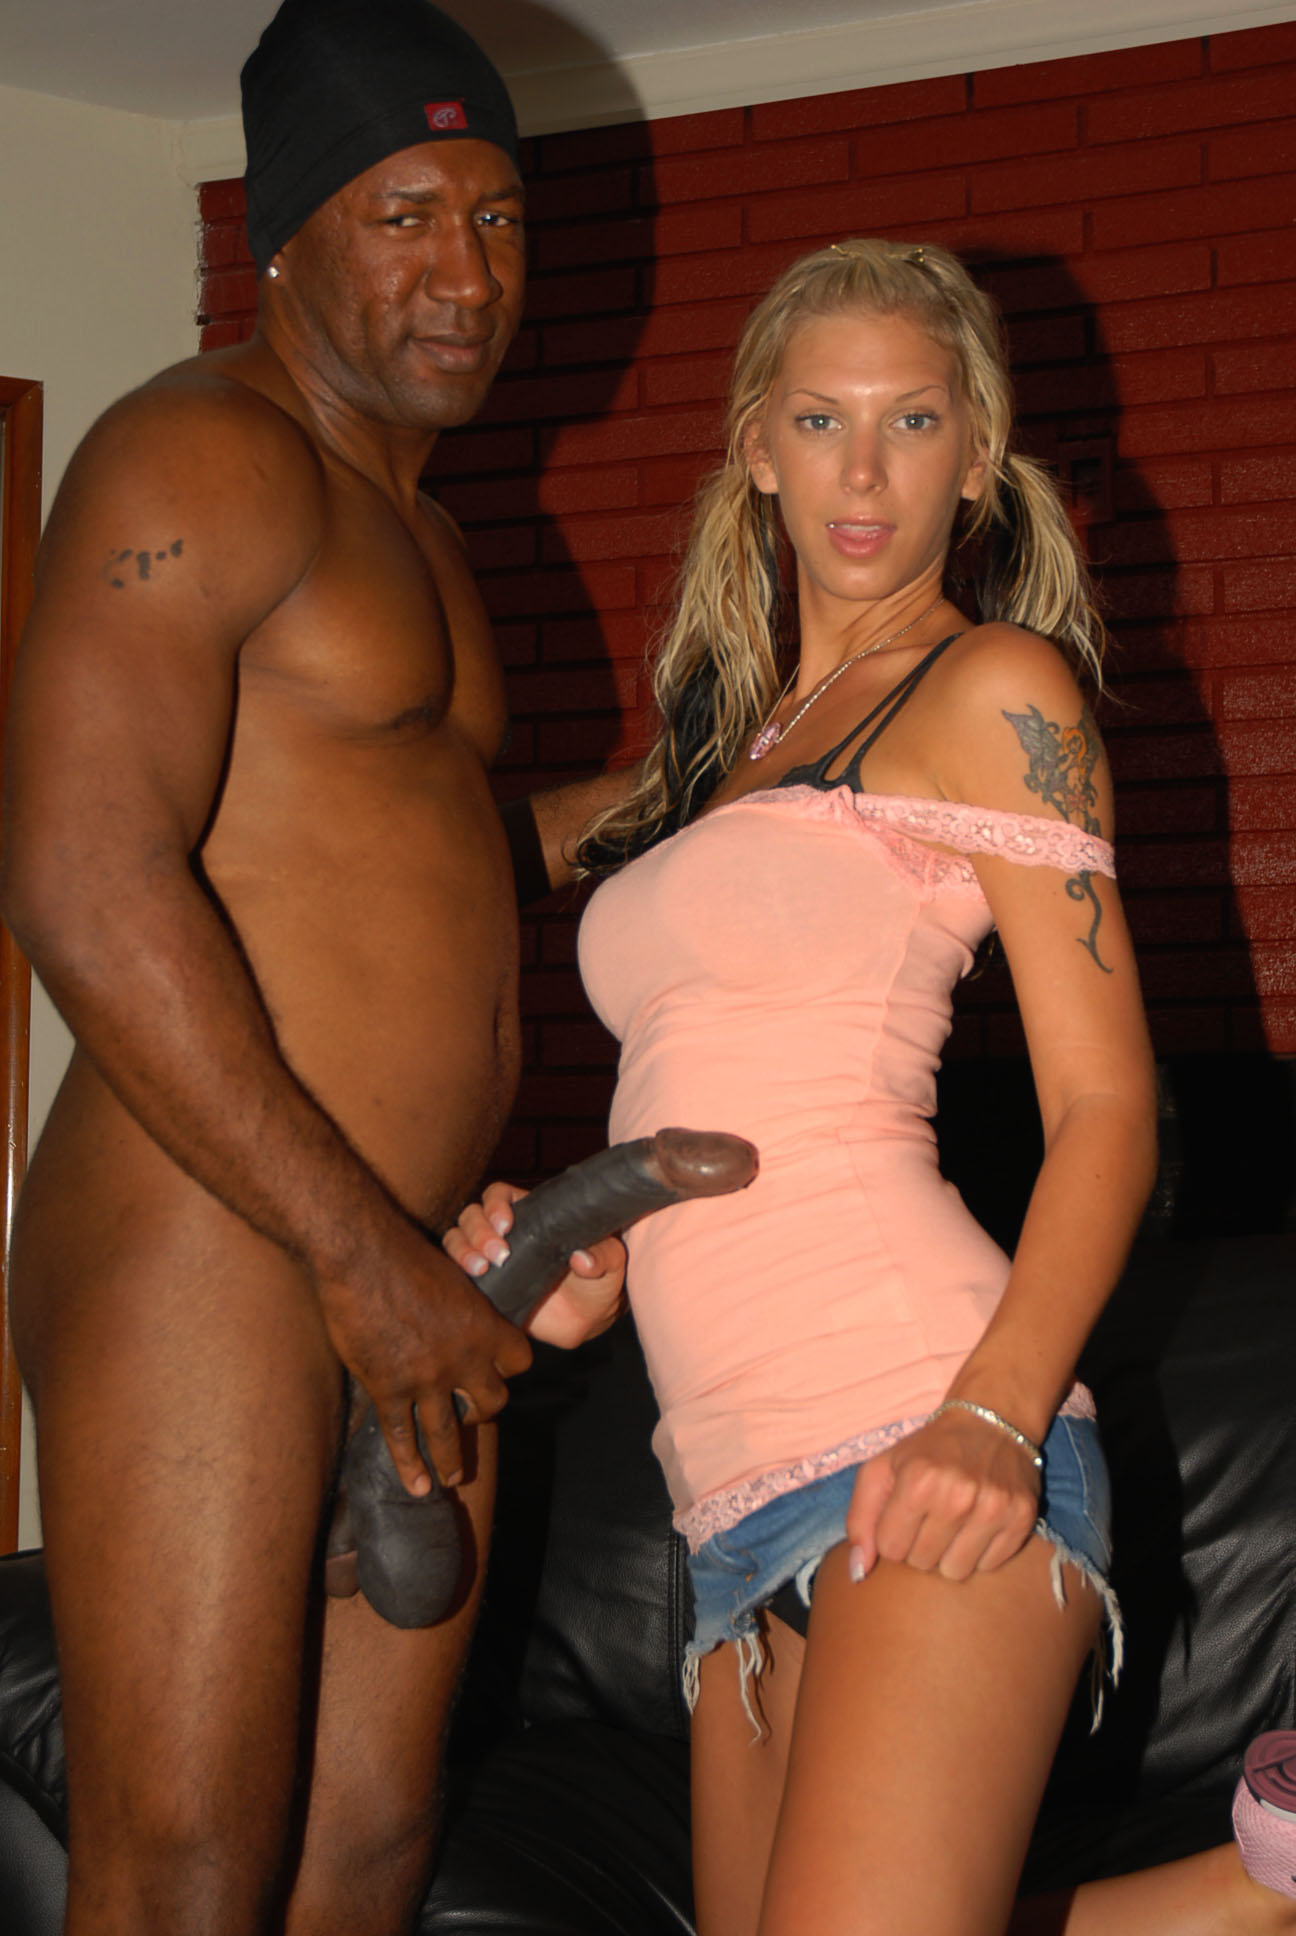 ASS! cuckhold and big dick que tamanho